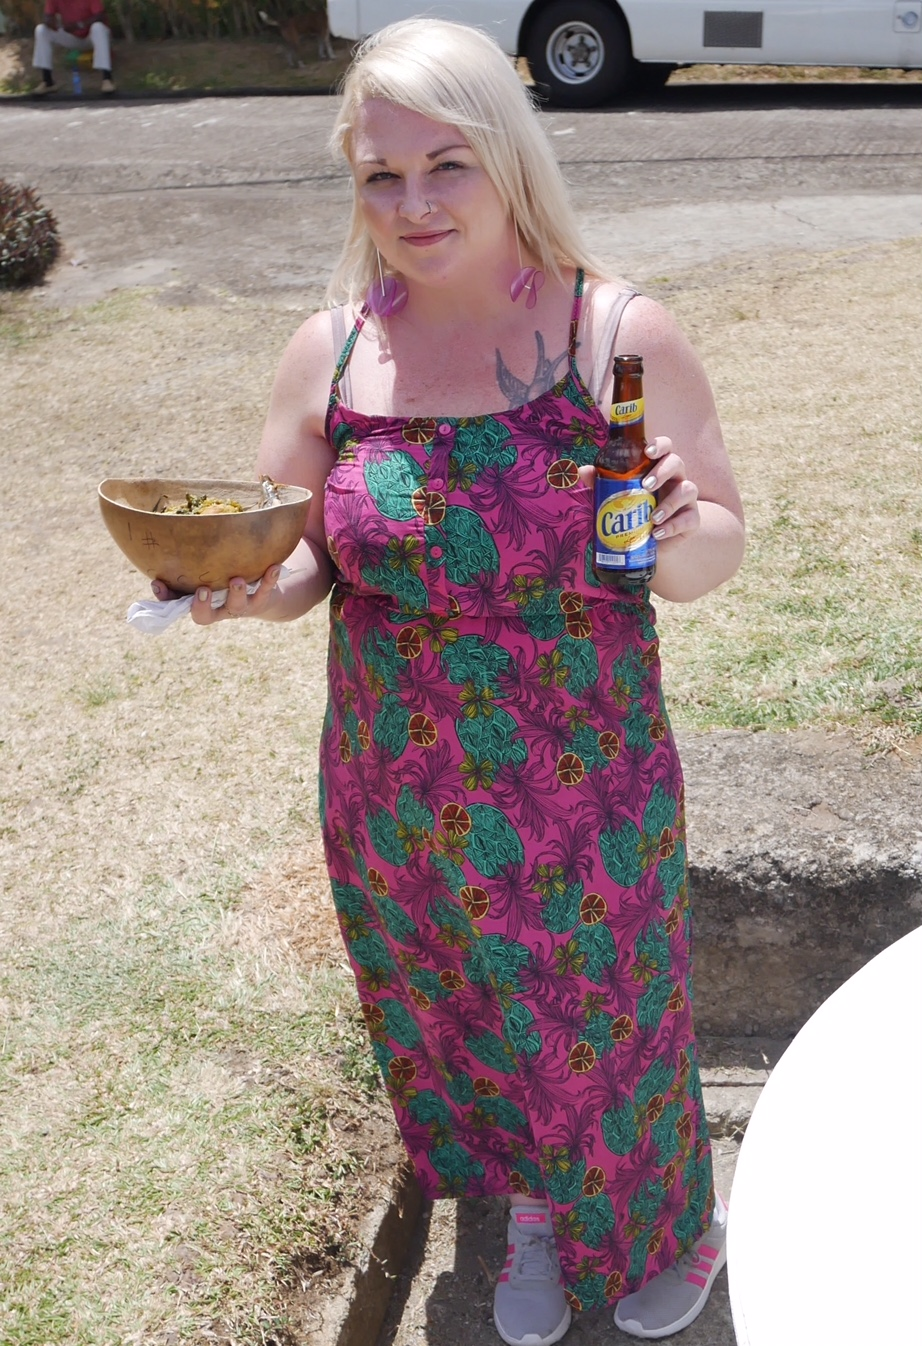 Tucking in to Grenada's national dish, oildow washed down with Carib beer at Grenada Chocolate Company